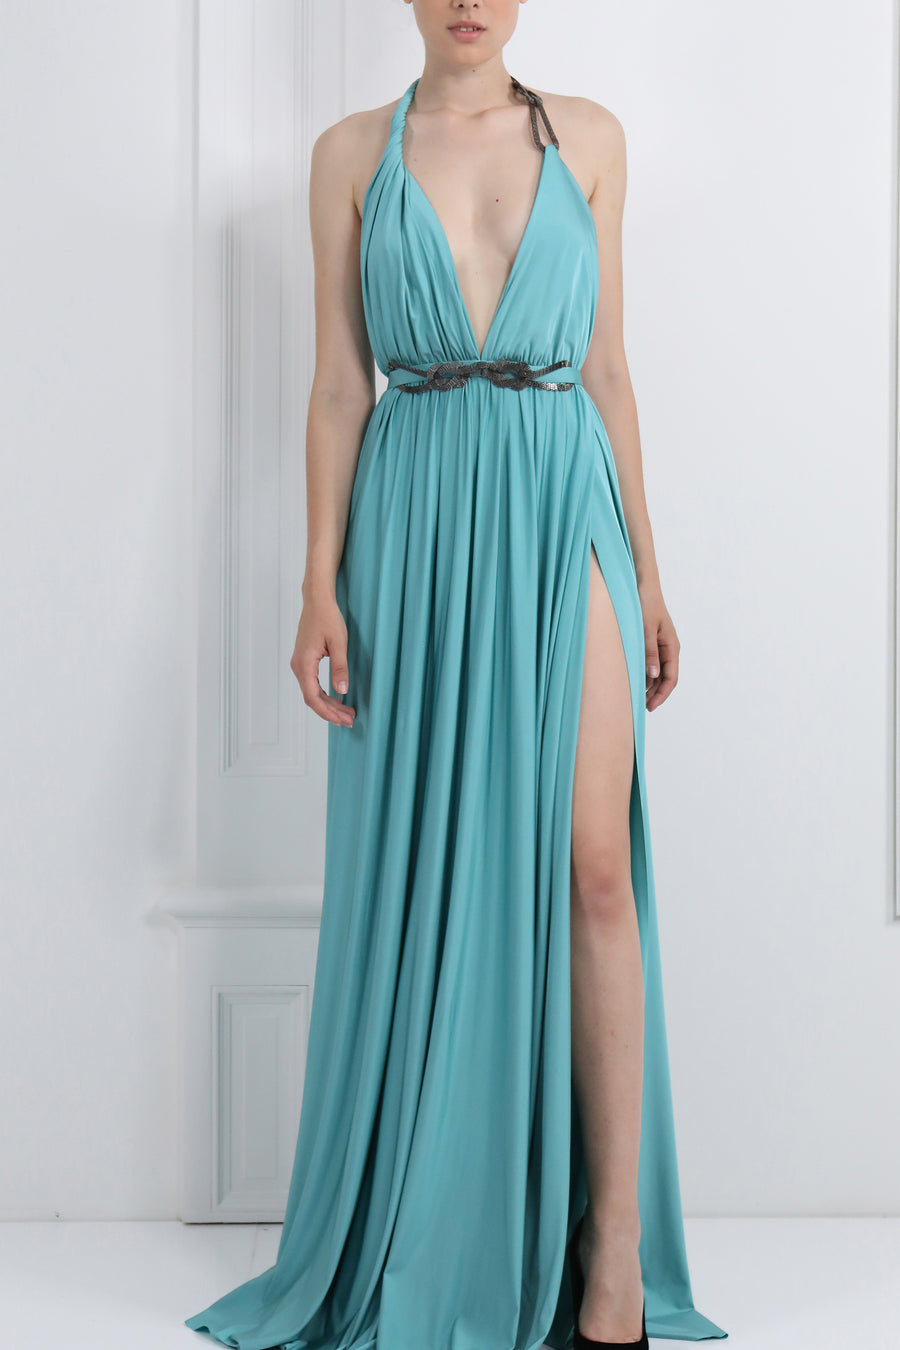 'Norah' Halter-Like Dress